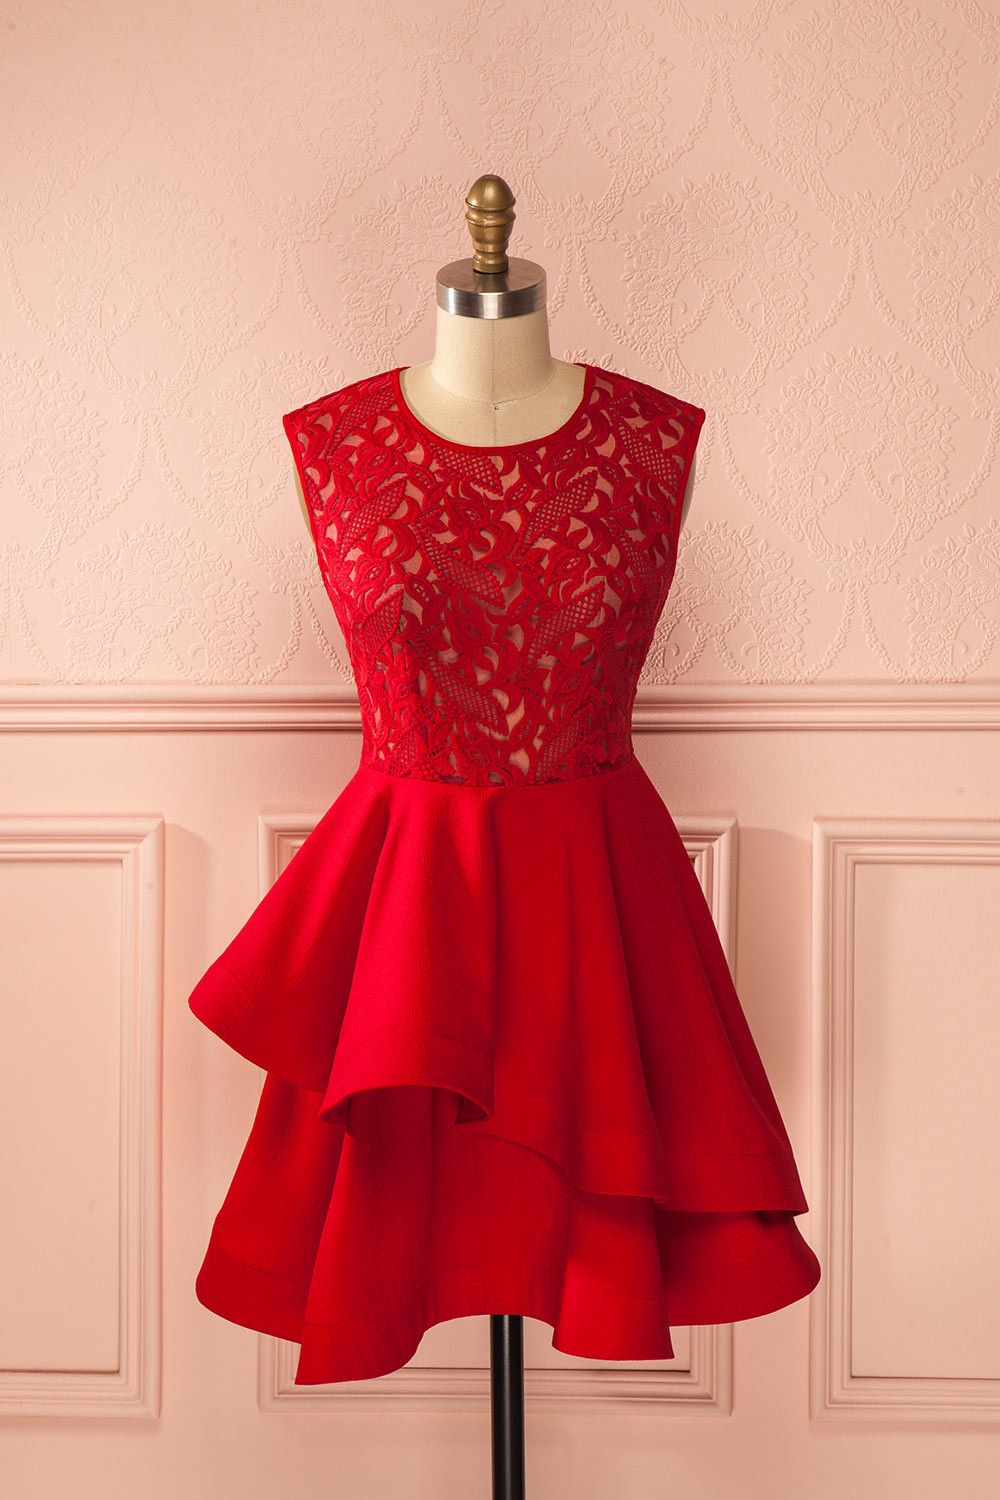 eb463543ce2 Robe trapèze rouge vif buste dentelle volants étagés asymétrique - Red  a-line asymmetric ruffle layers lace bust dress